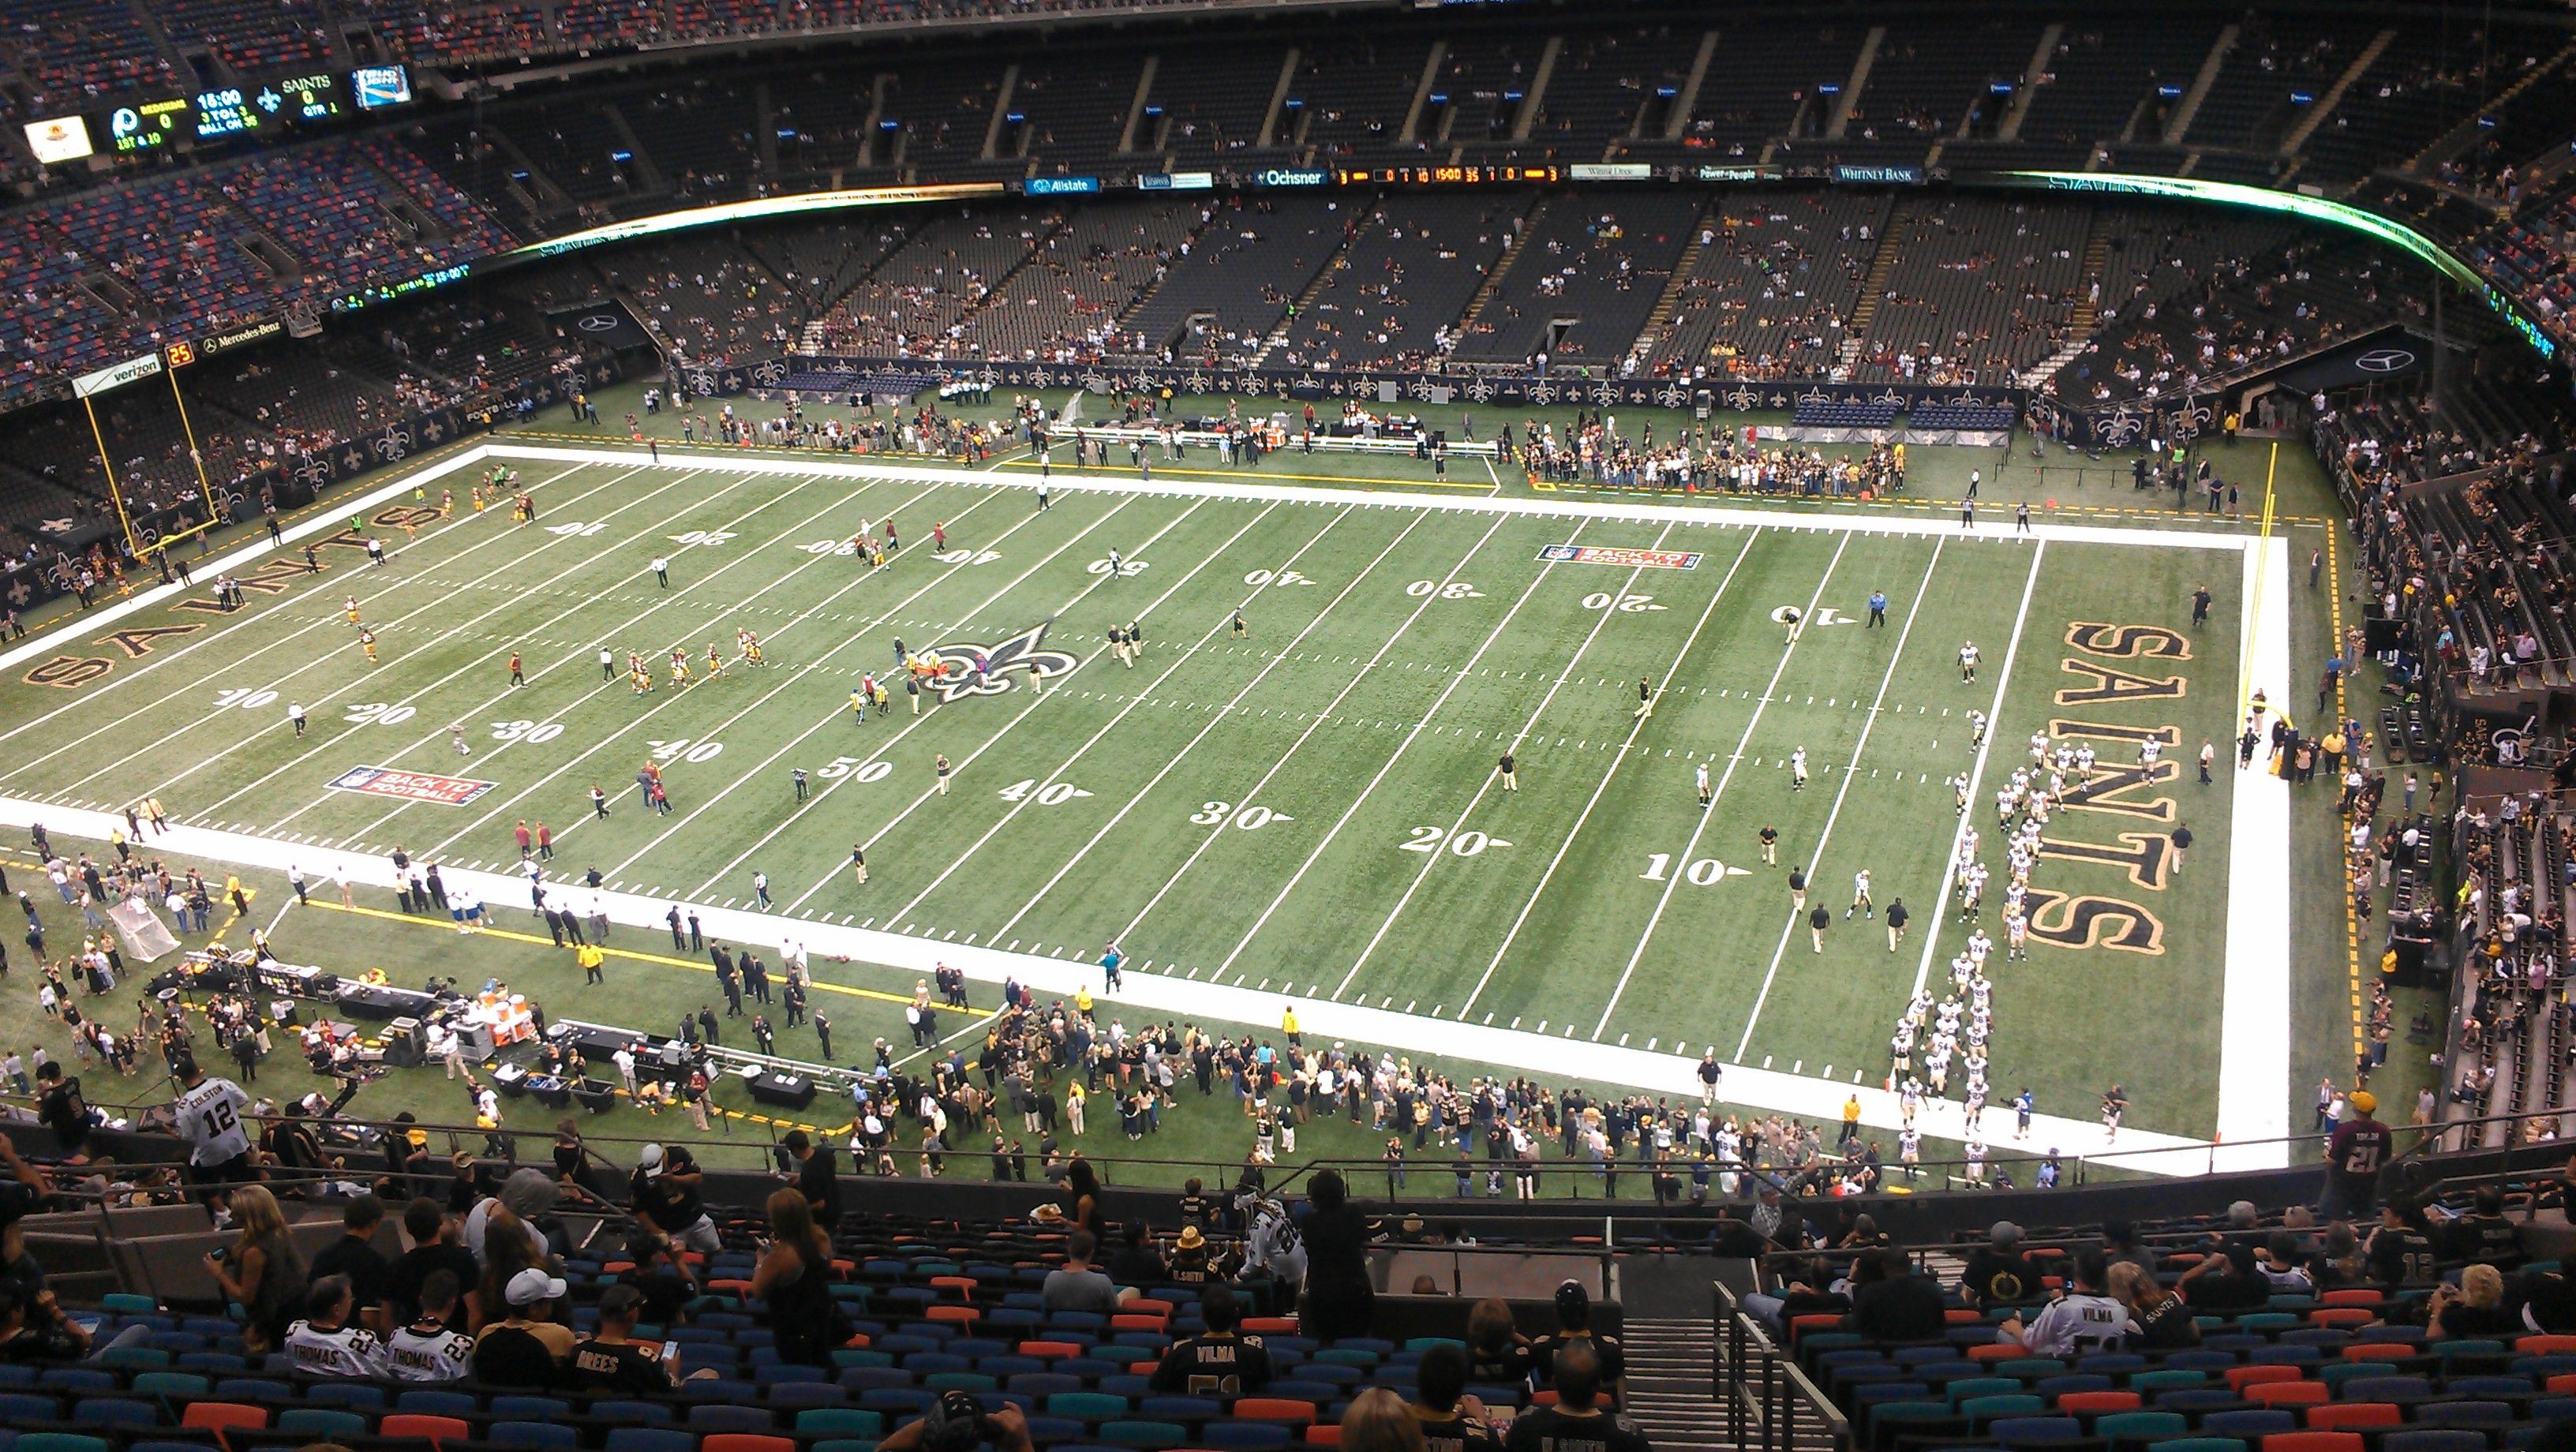 Inside the Mercedes Benz Superdome home of the New Orleans Saints